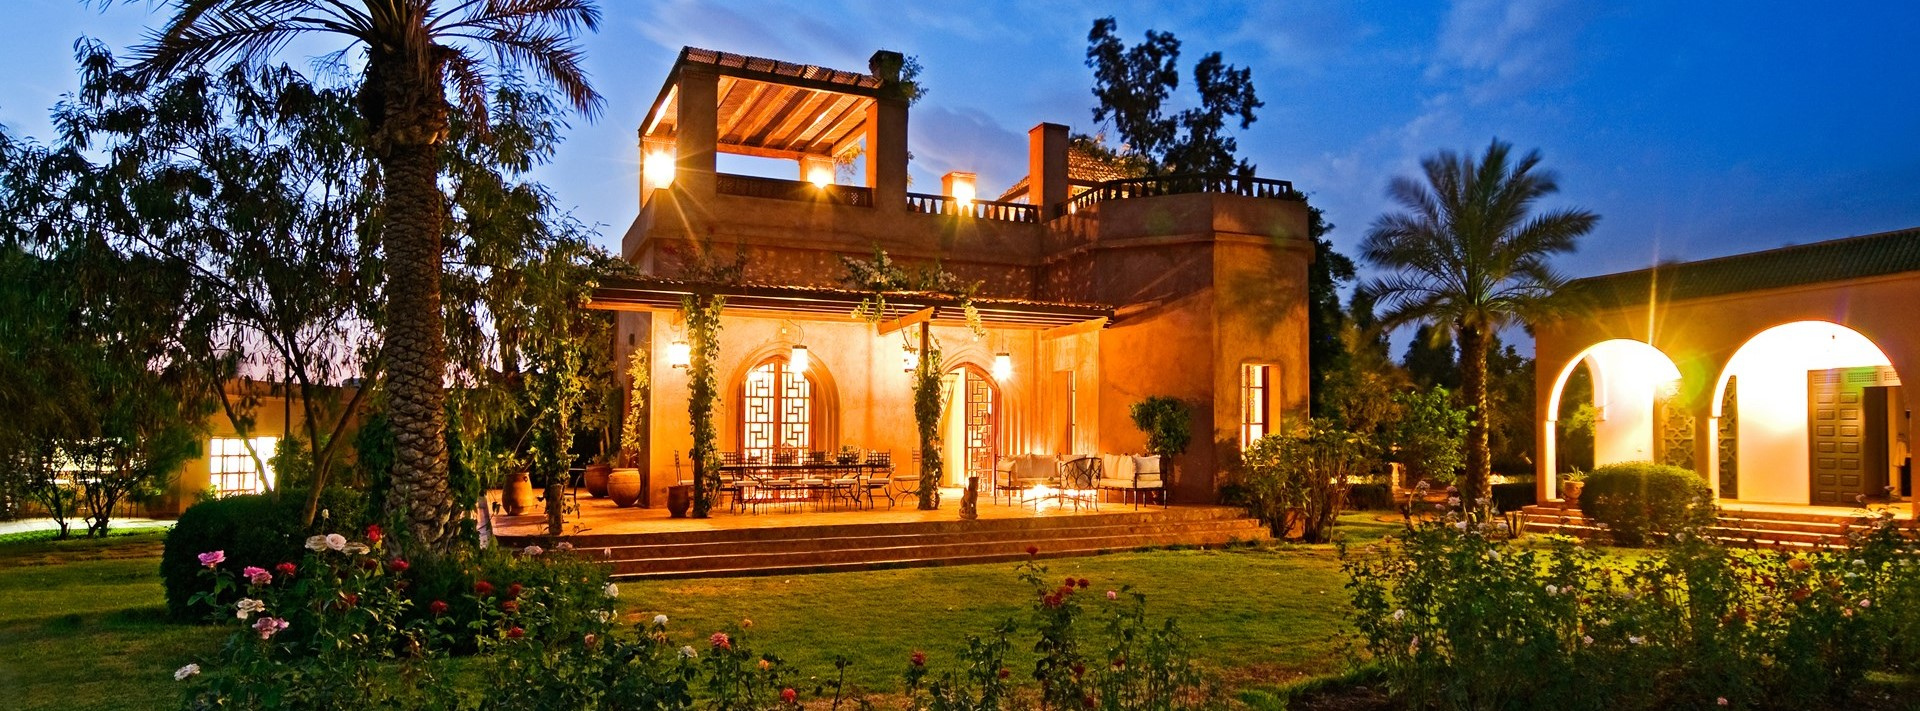 6-bedroom-luxury-villa-marrakech